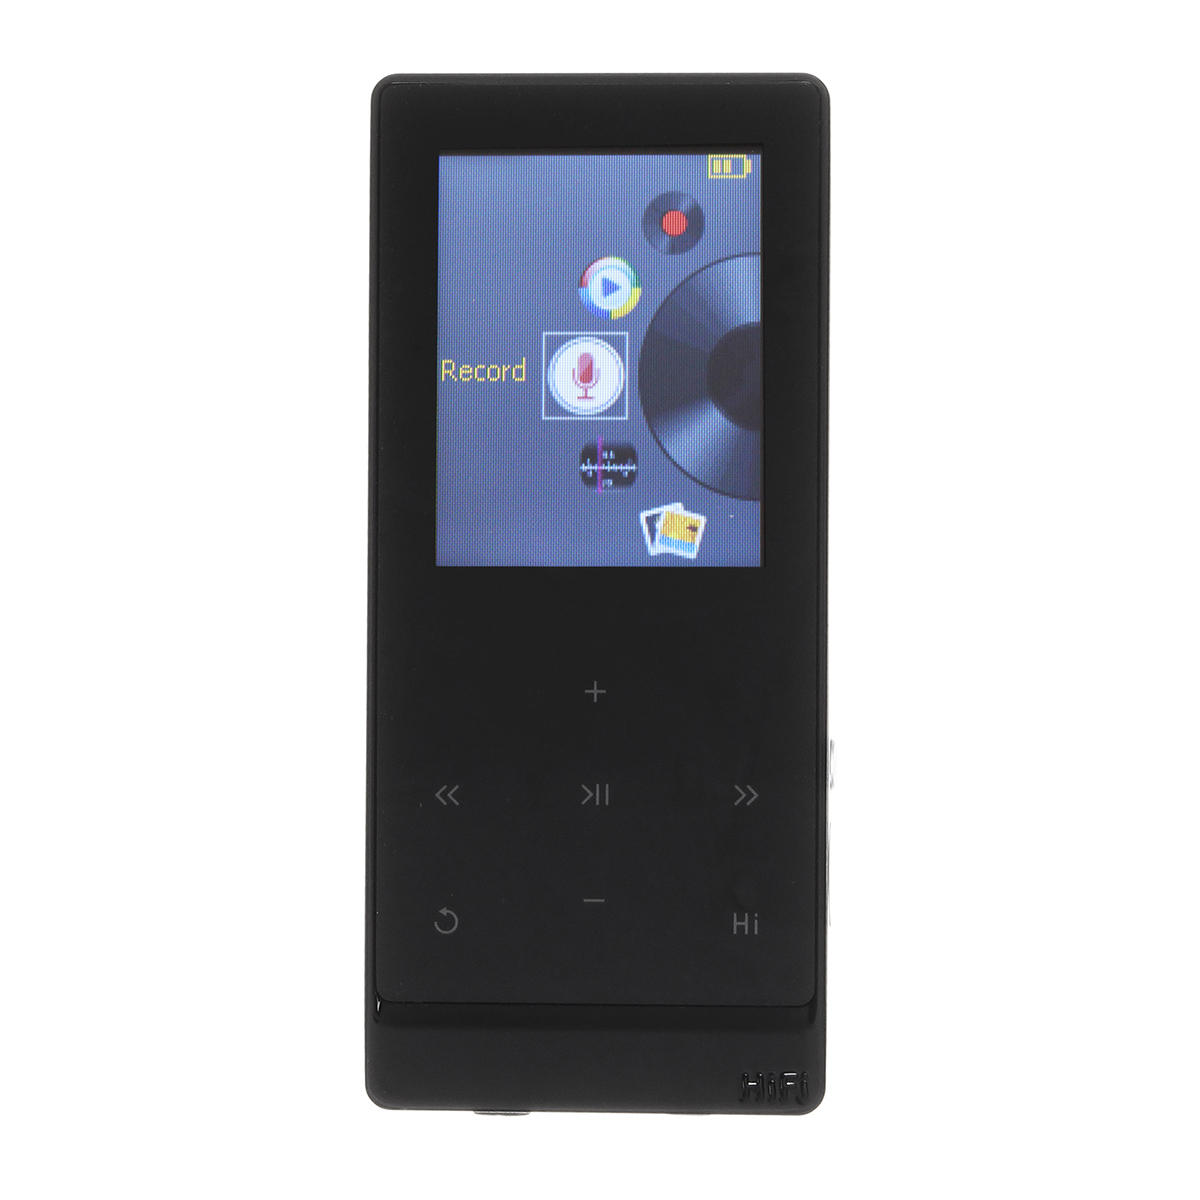 A7 8GB 1.8 Inch TFT bluetooth HIFI Touch Screen Video FM Radio Receiver MP3 Music Player